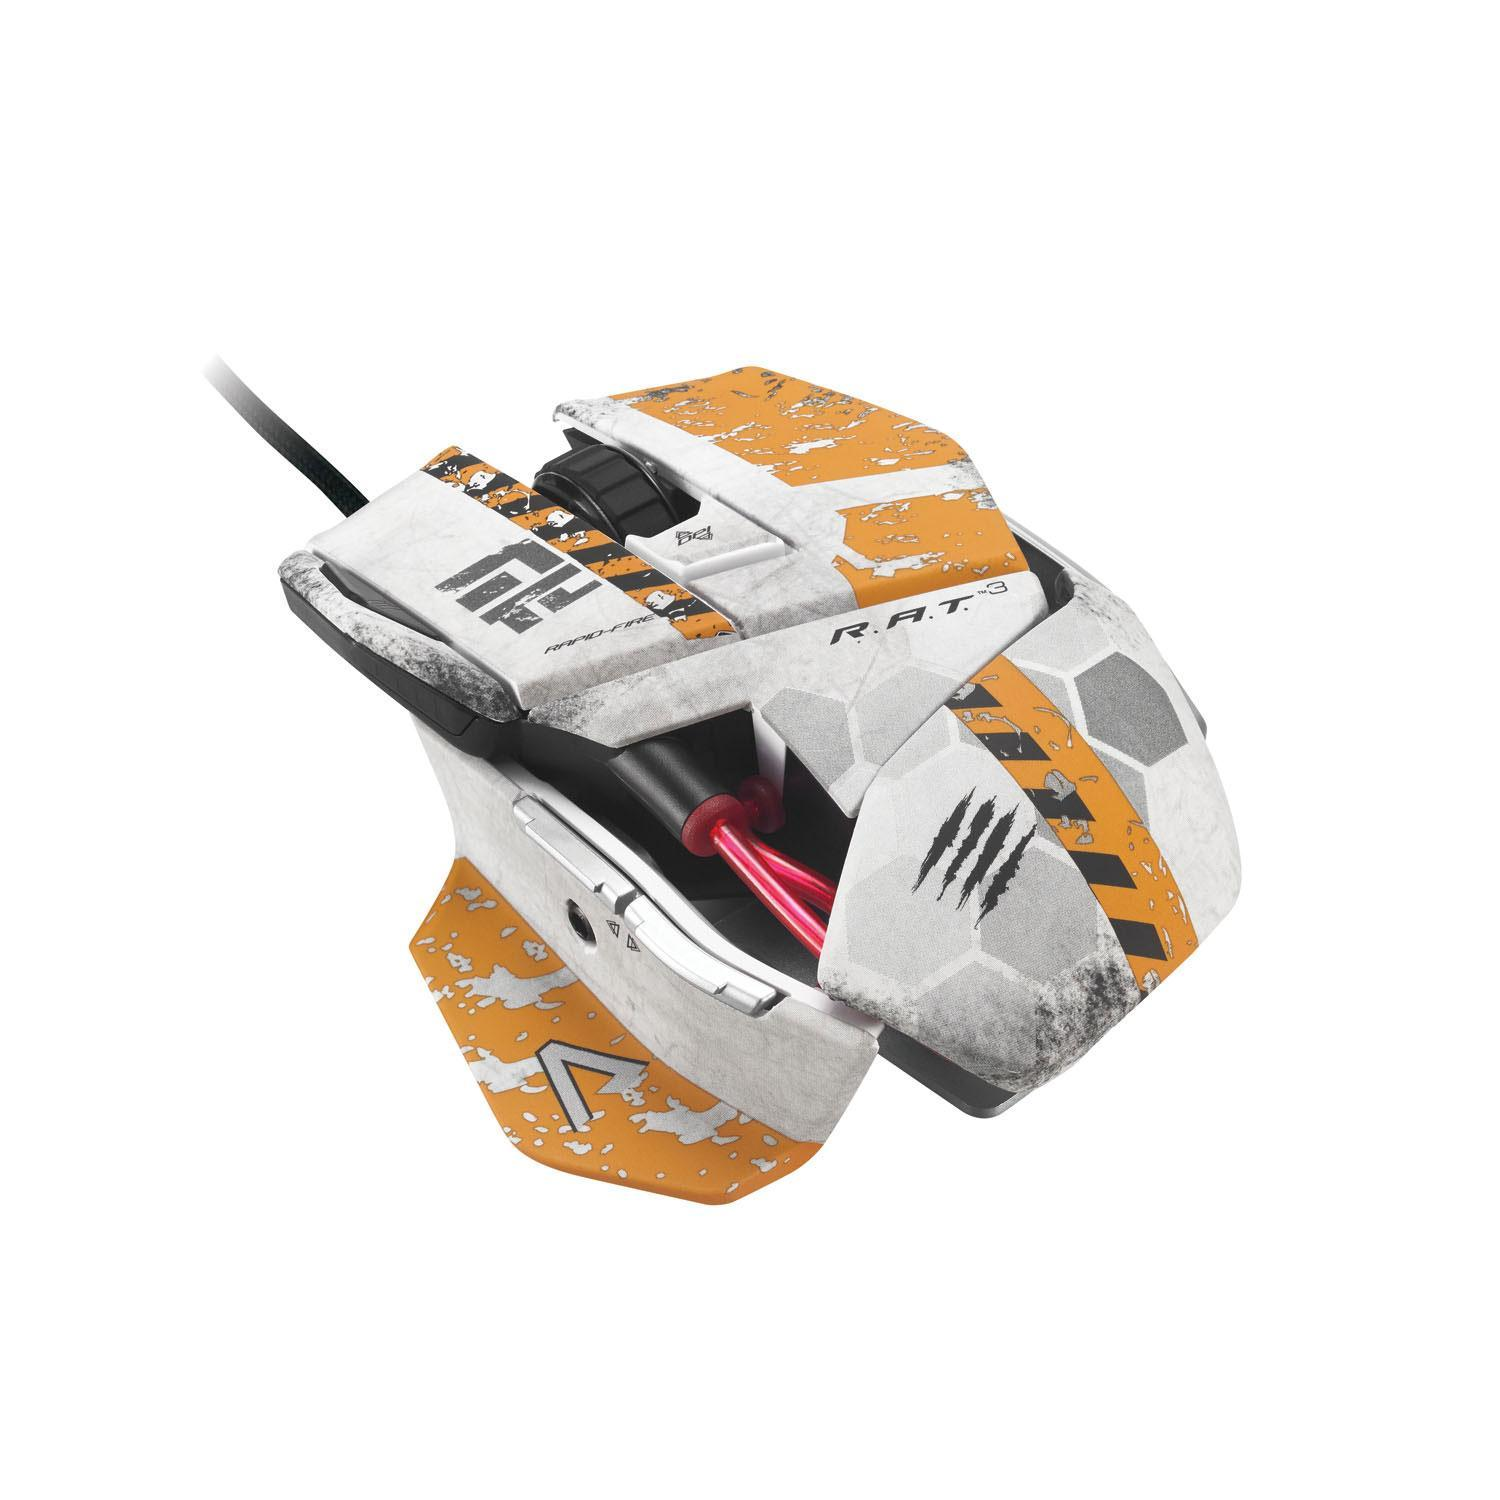 Mad Catz Titanfall R.A.T. 3 Gaming Mouse